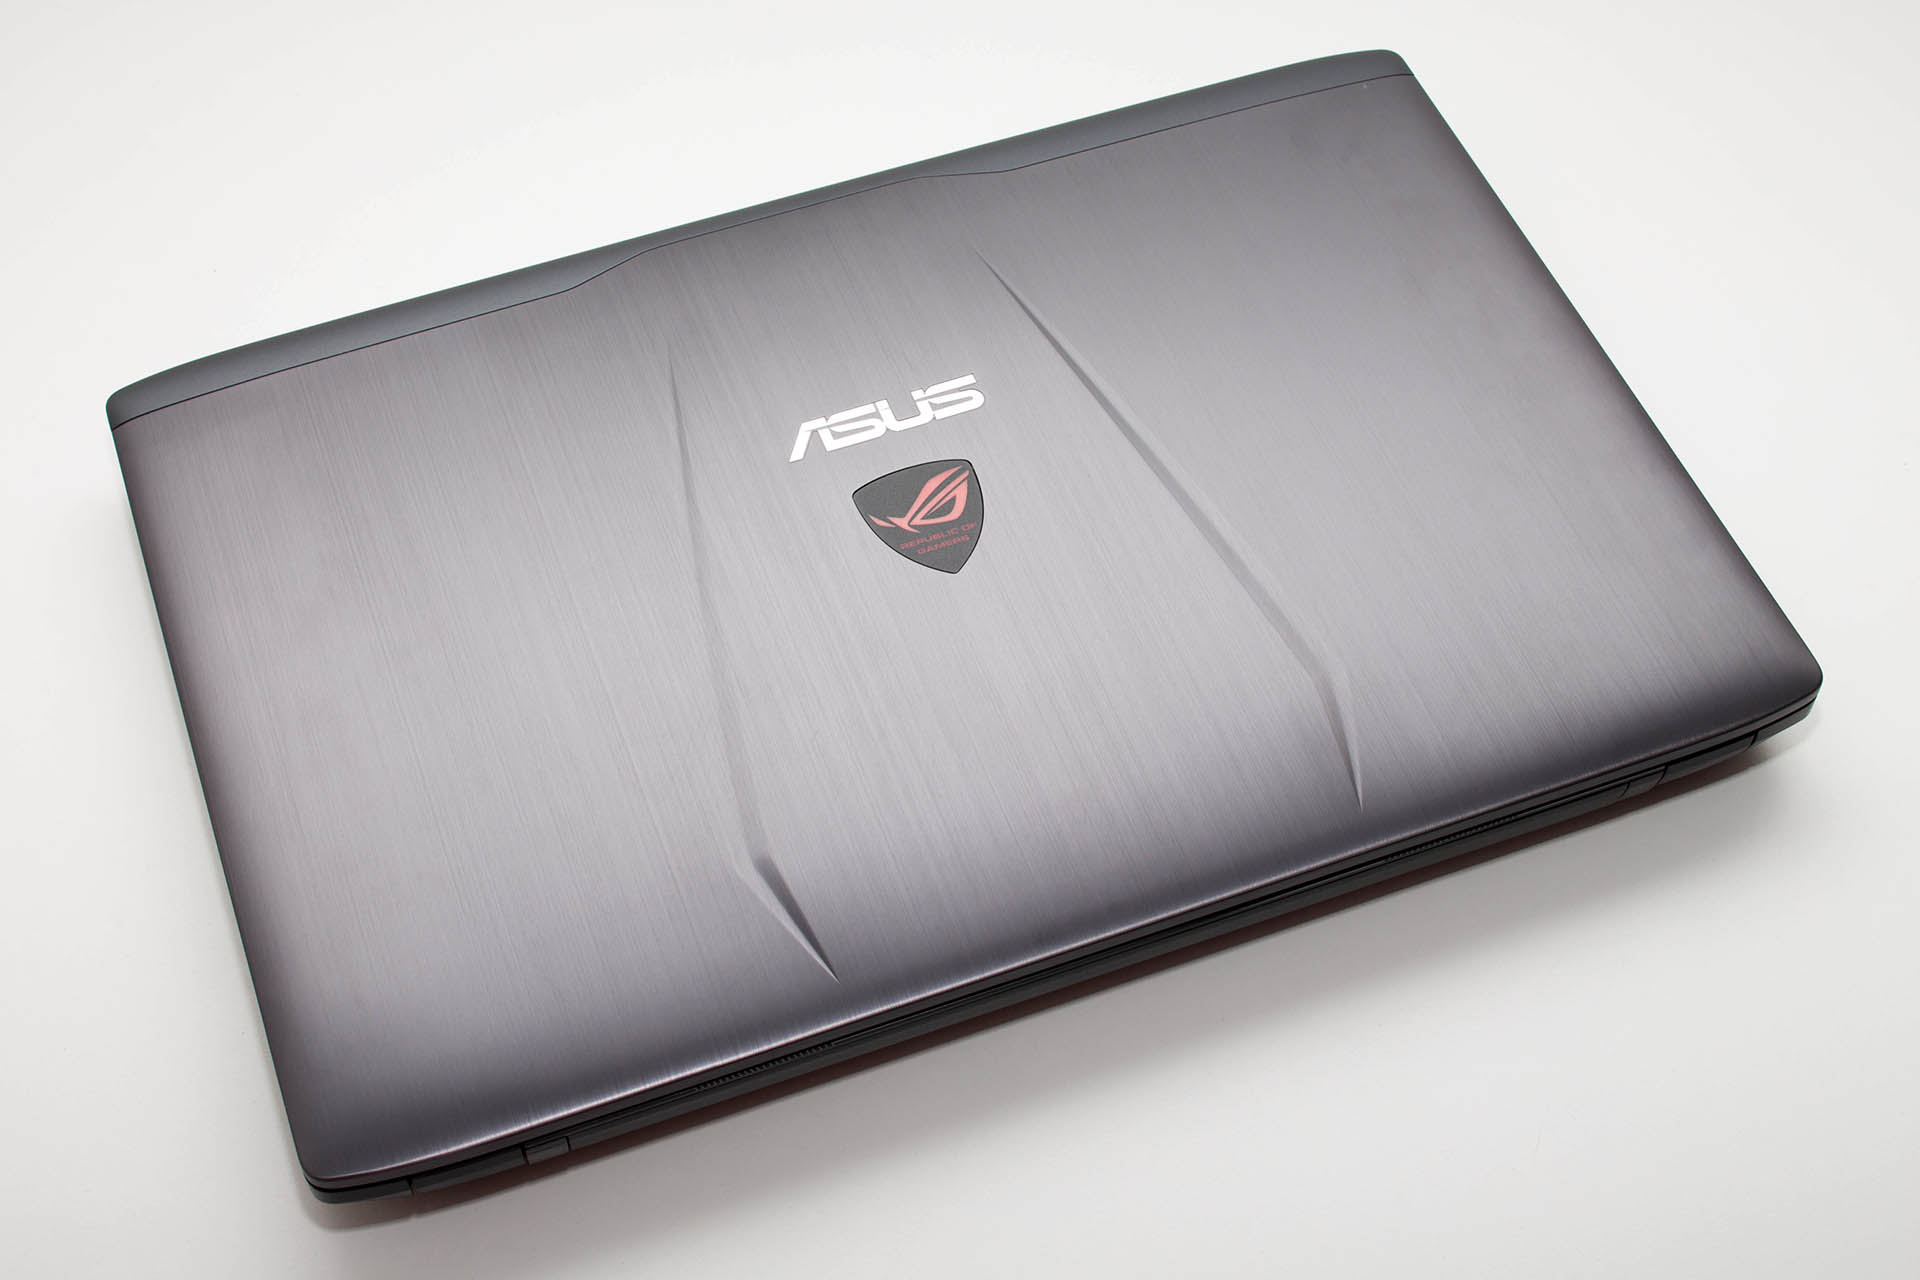 ASUS ROG GL552VW test